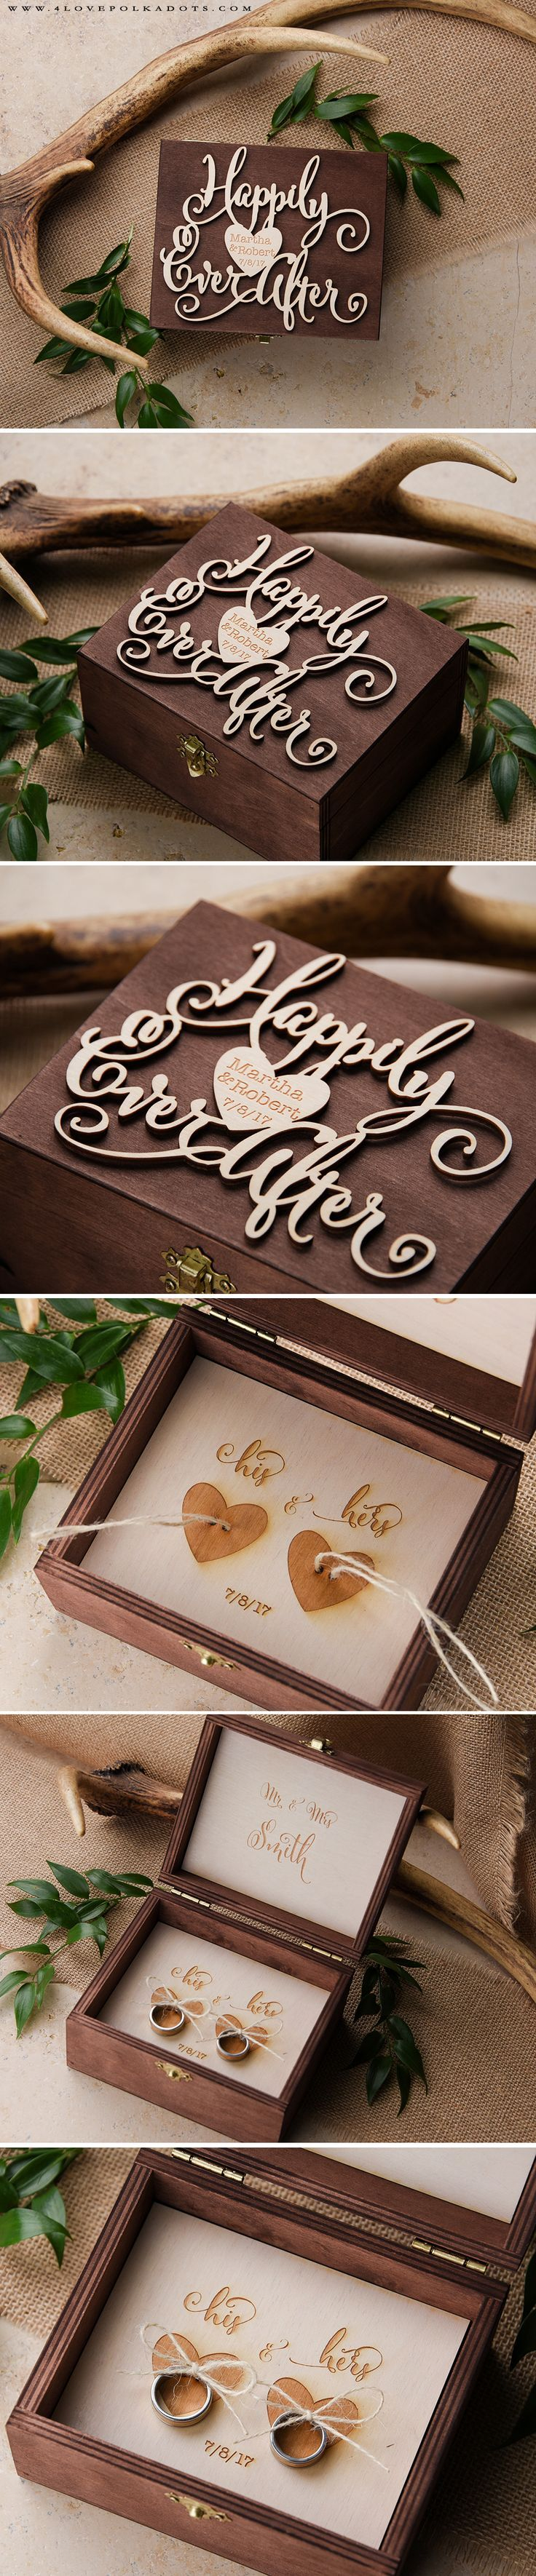 Happily Ever After ♥ Wedding Wooden Ring Bearer Box #weddingideas #boho #rustic…